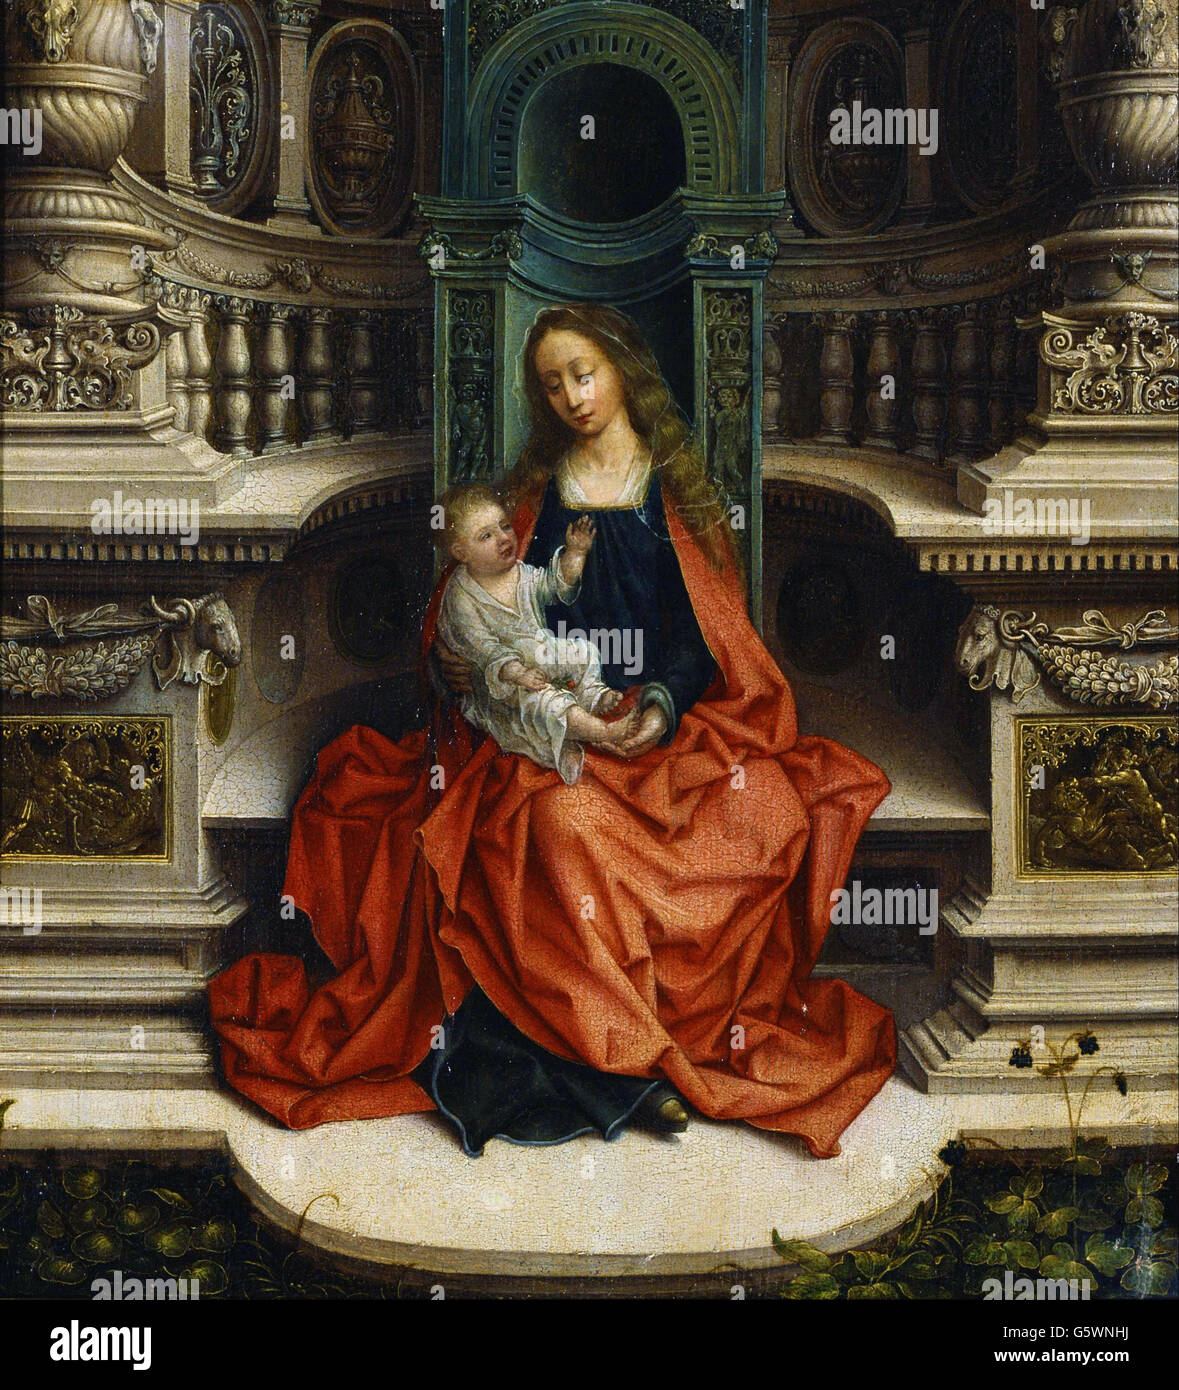 Adrian Isenbrandt - The Madonna and Child Enthroned - - Stock Image